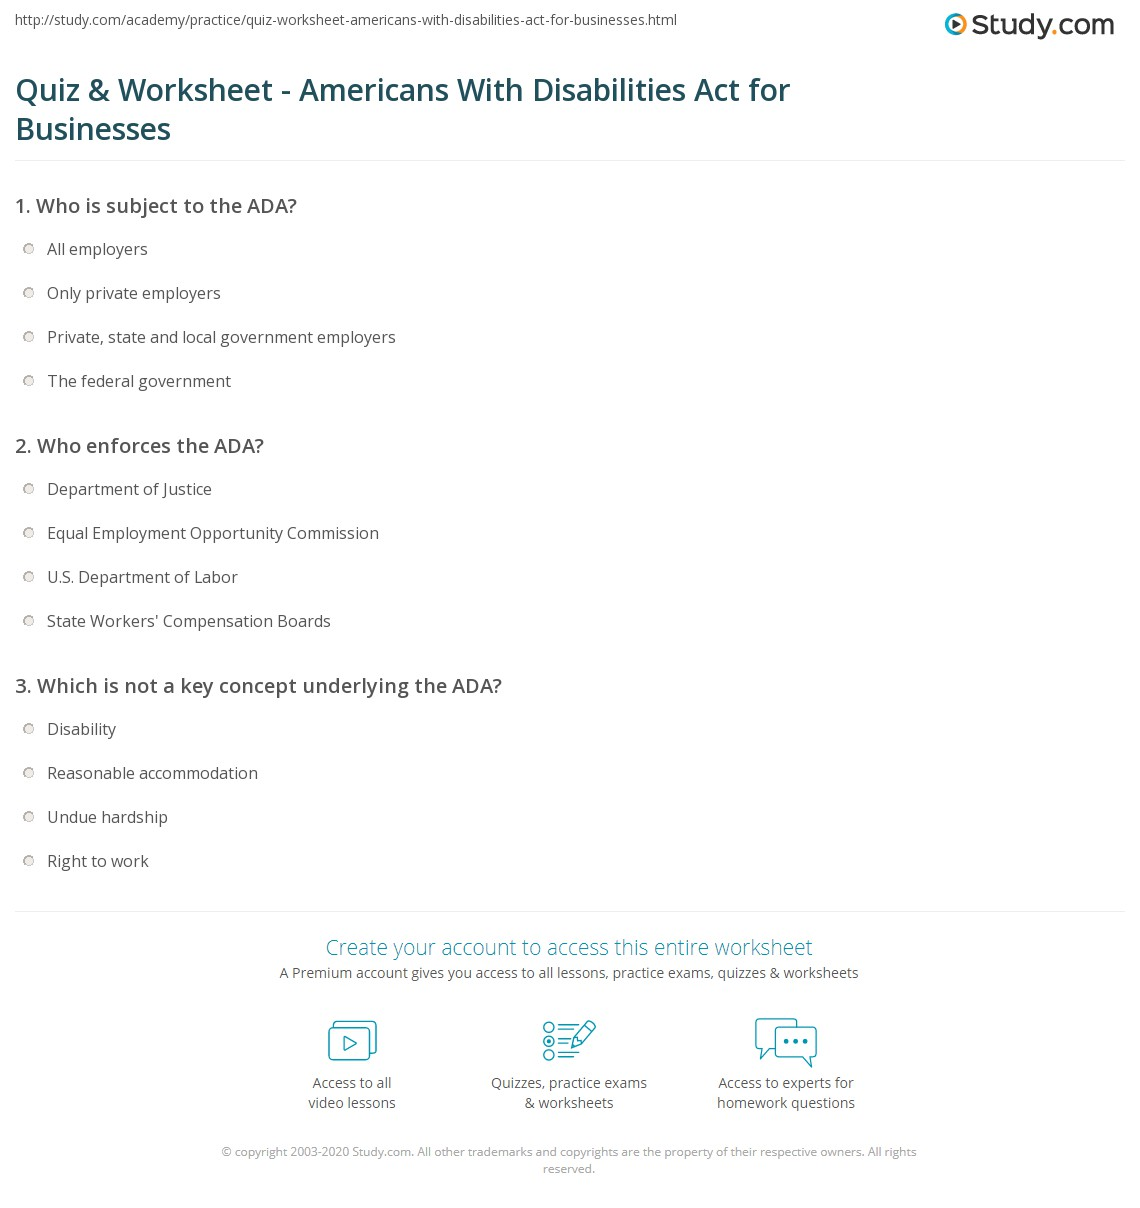 quiz & worksheet - americans with disabilities act for businesses